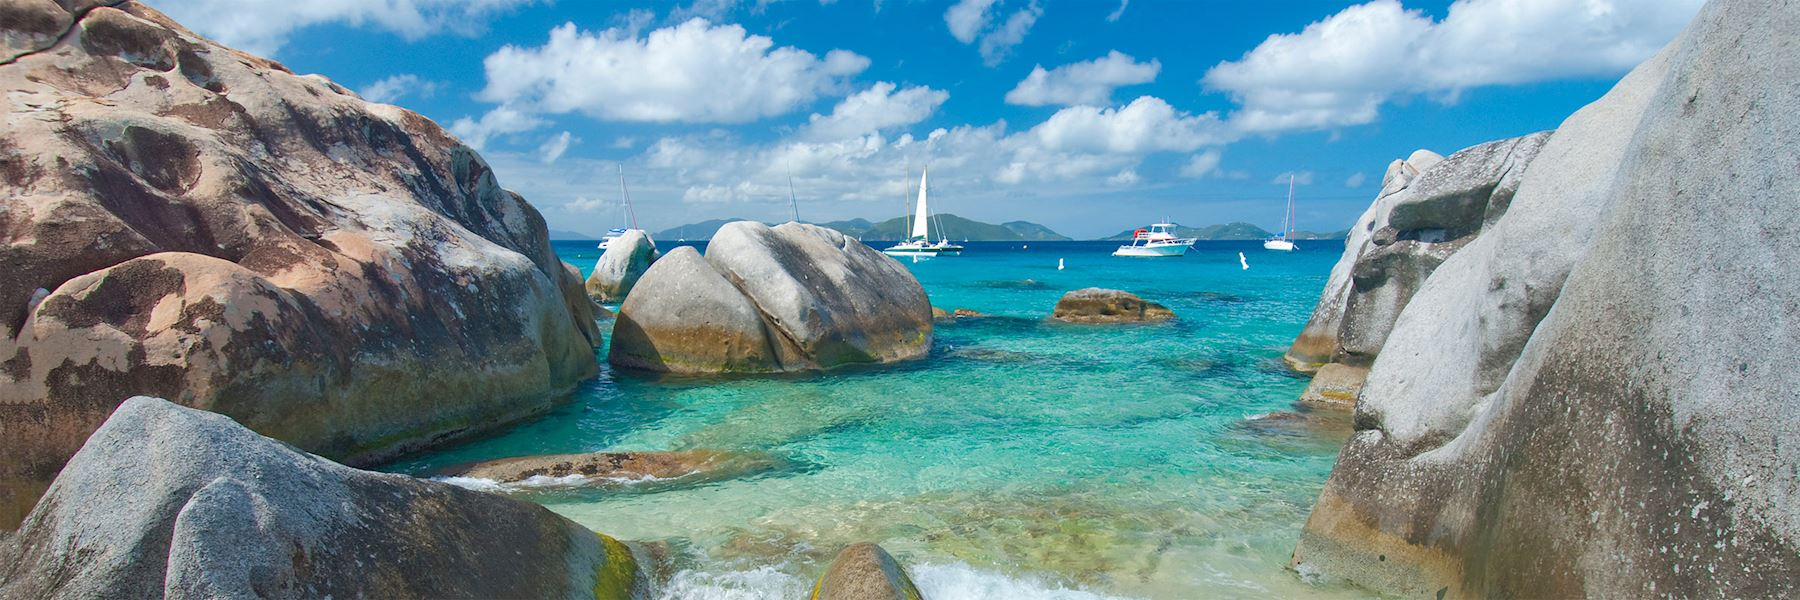 British Virgin Islands holidays